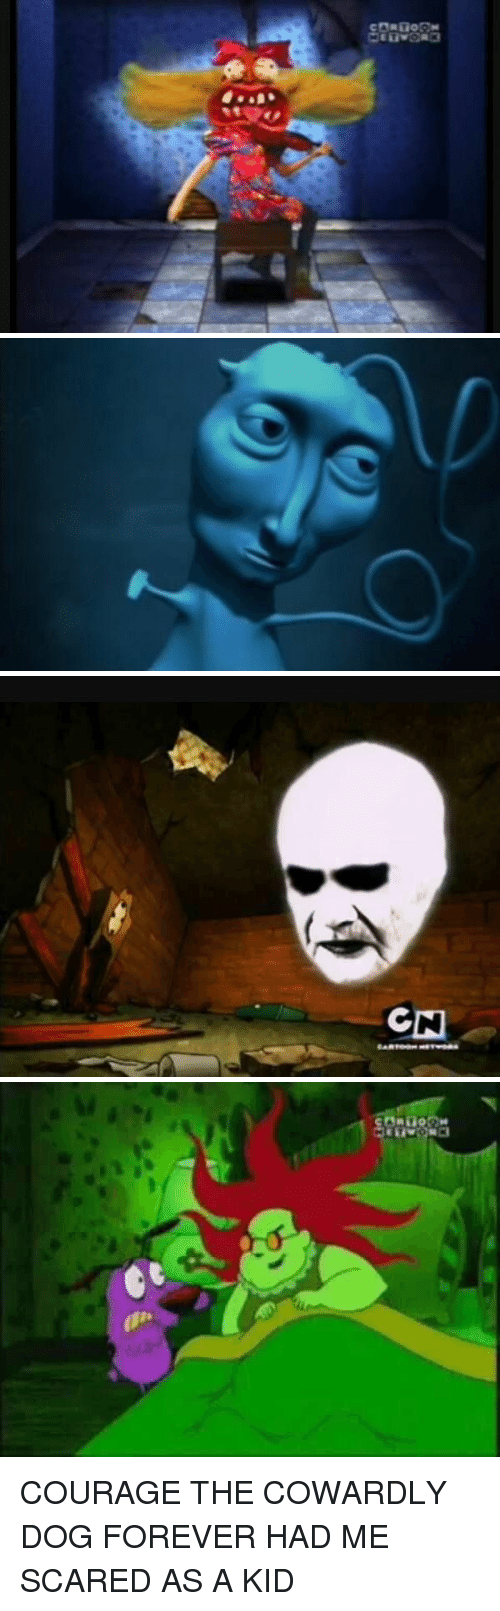 Courage the Cowardly Dog: cDRGORM   CN   g COURAGE THE COWARDLY DOG FOREVER HAD ME SCARED AS A KID